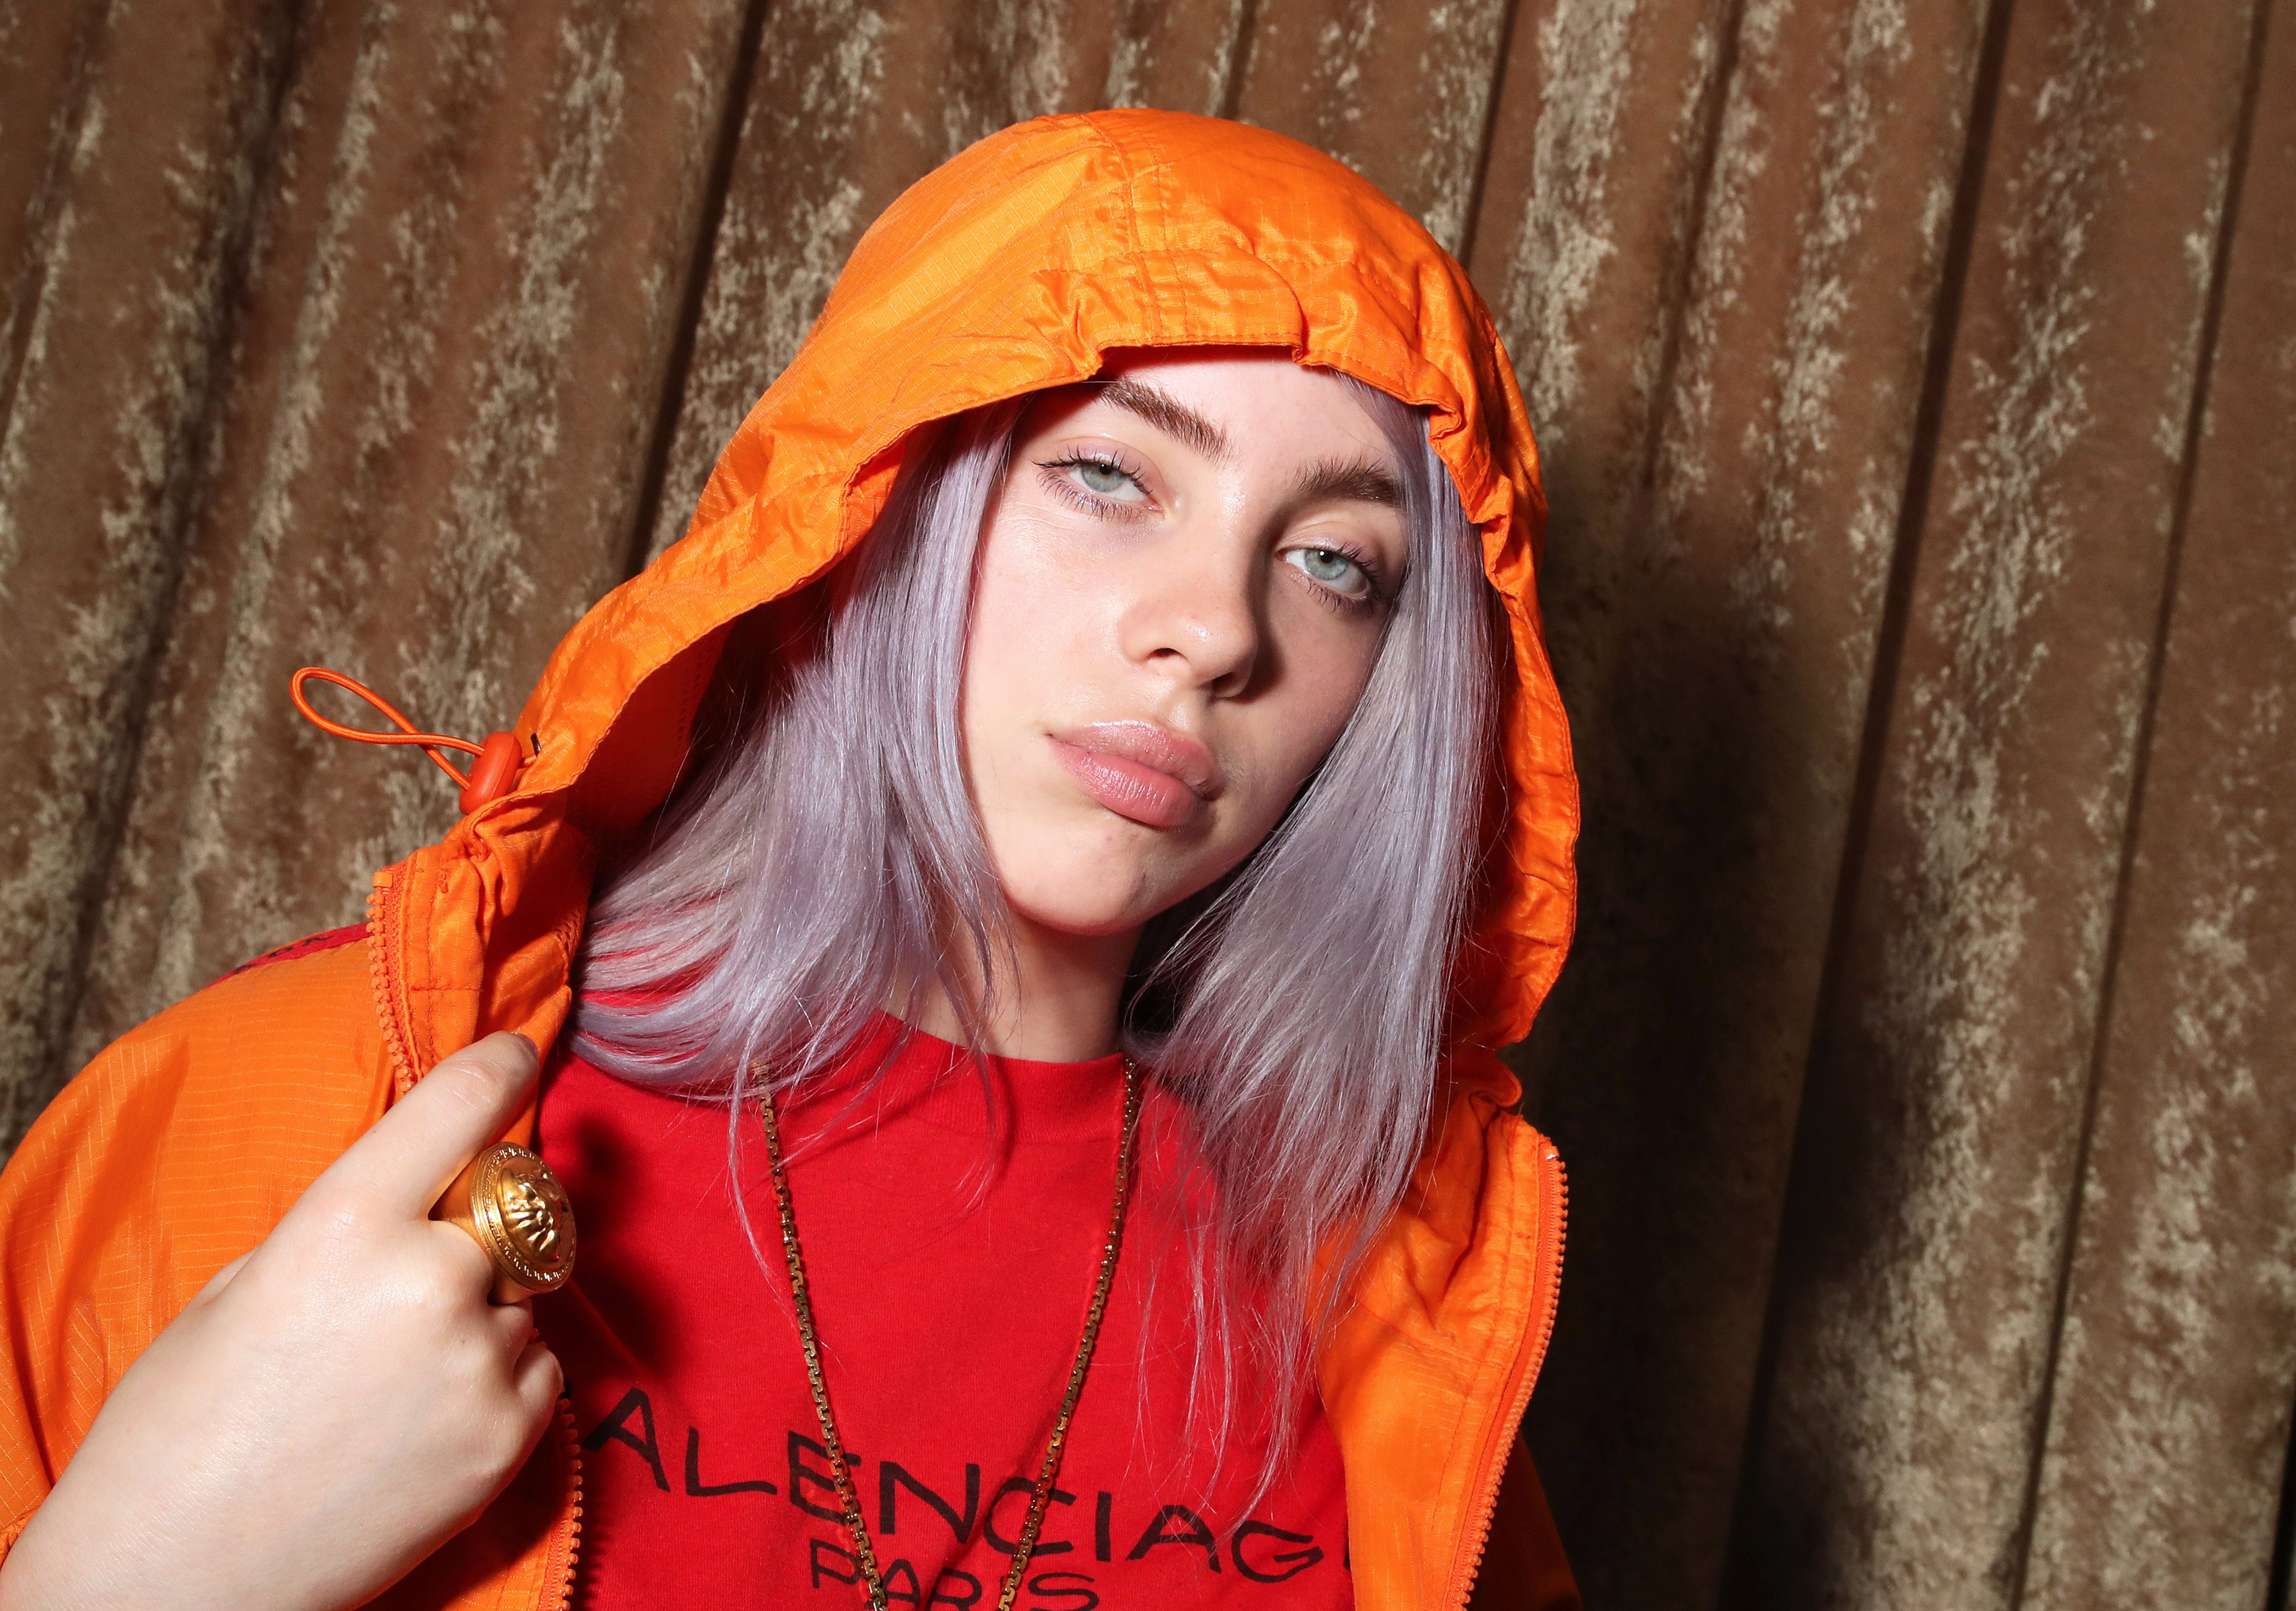 Billie Eilish Is Redefining What It Means To Be A Popstar